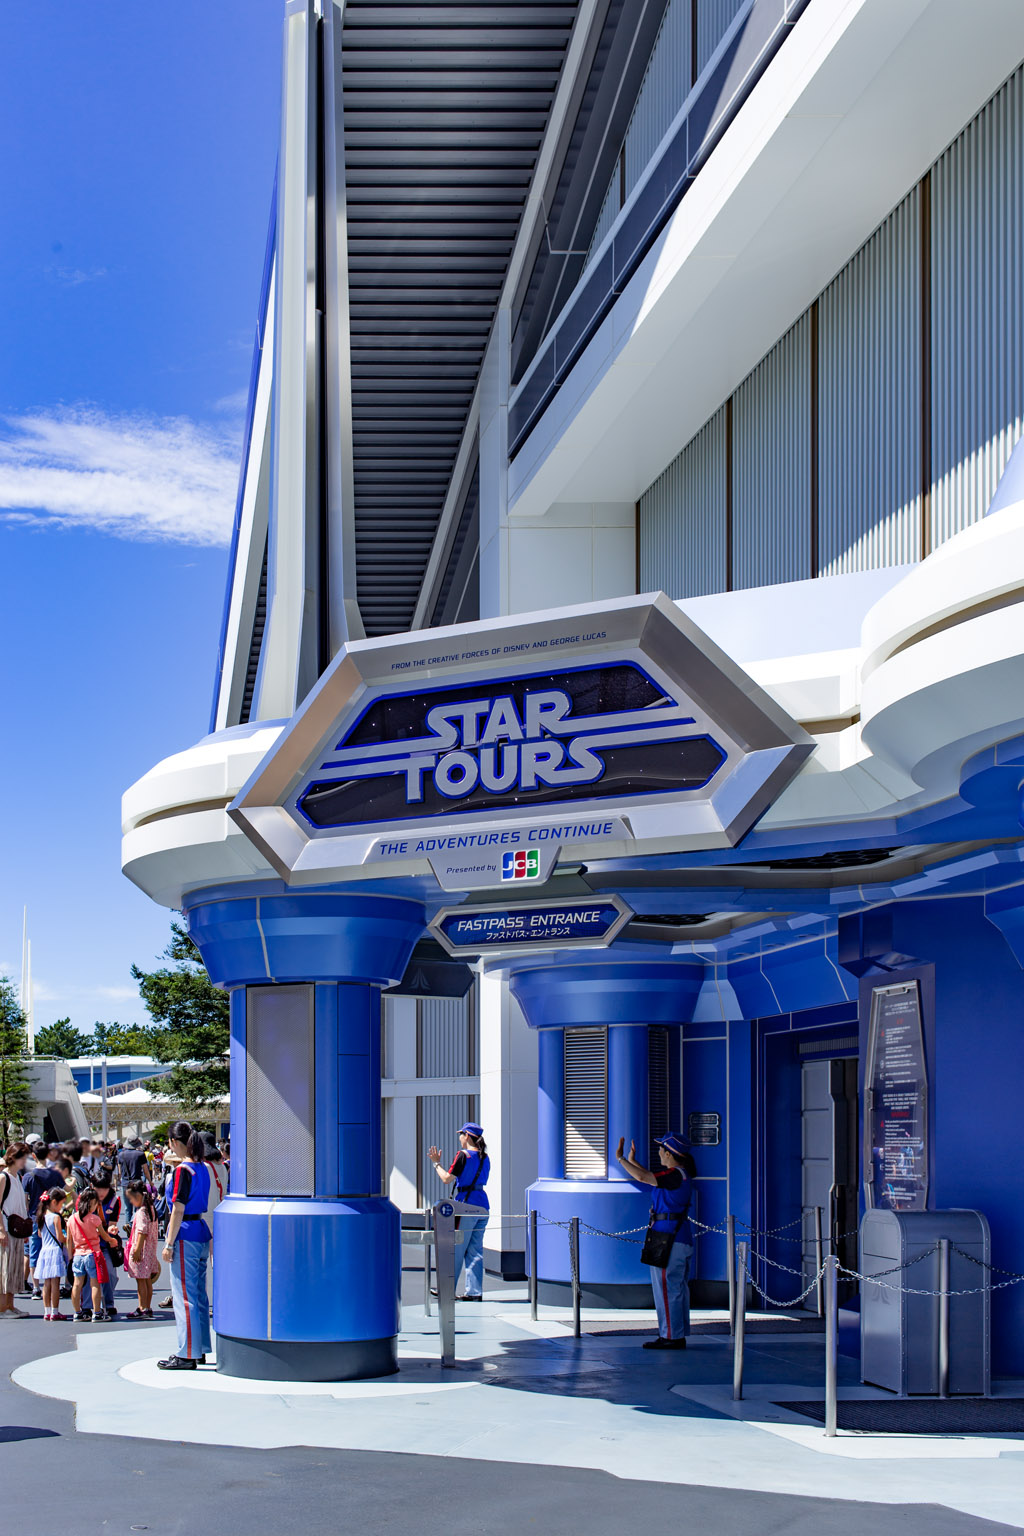 FASTPASS ENTRANCE(STAR TOURS)